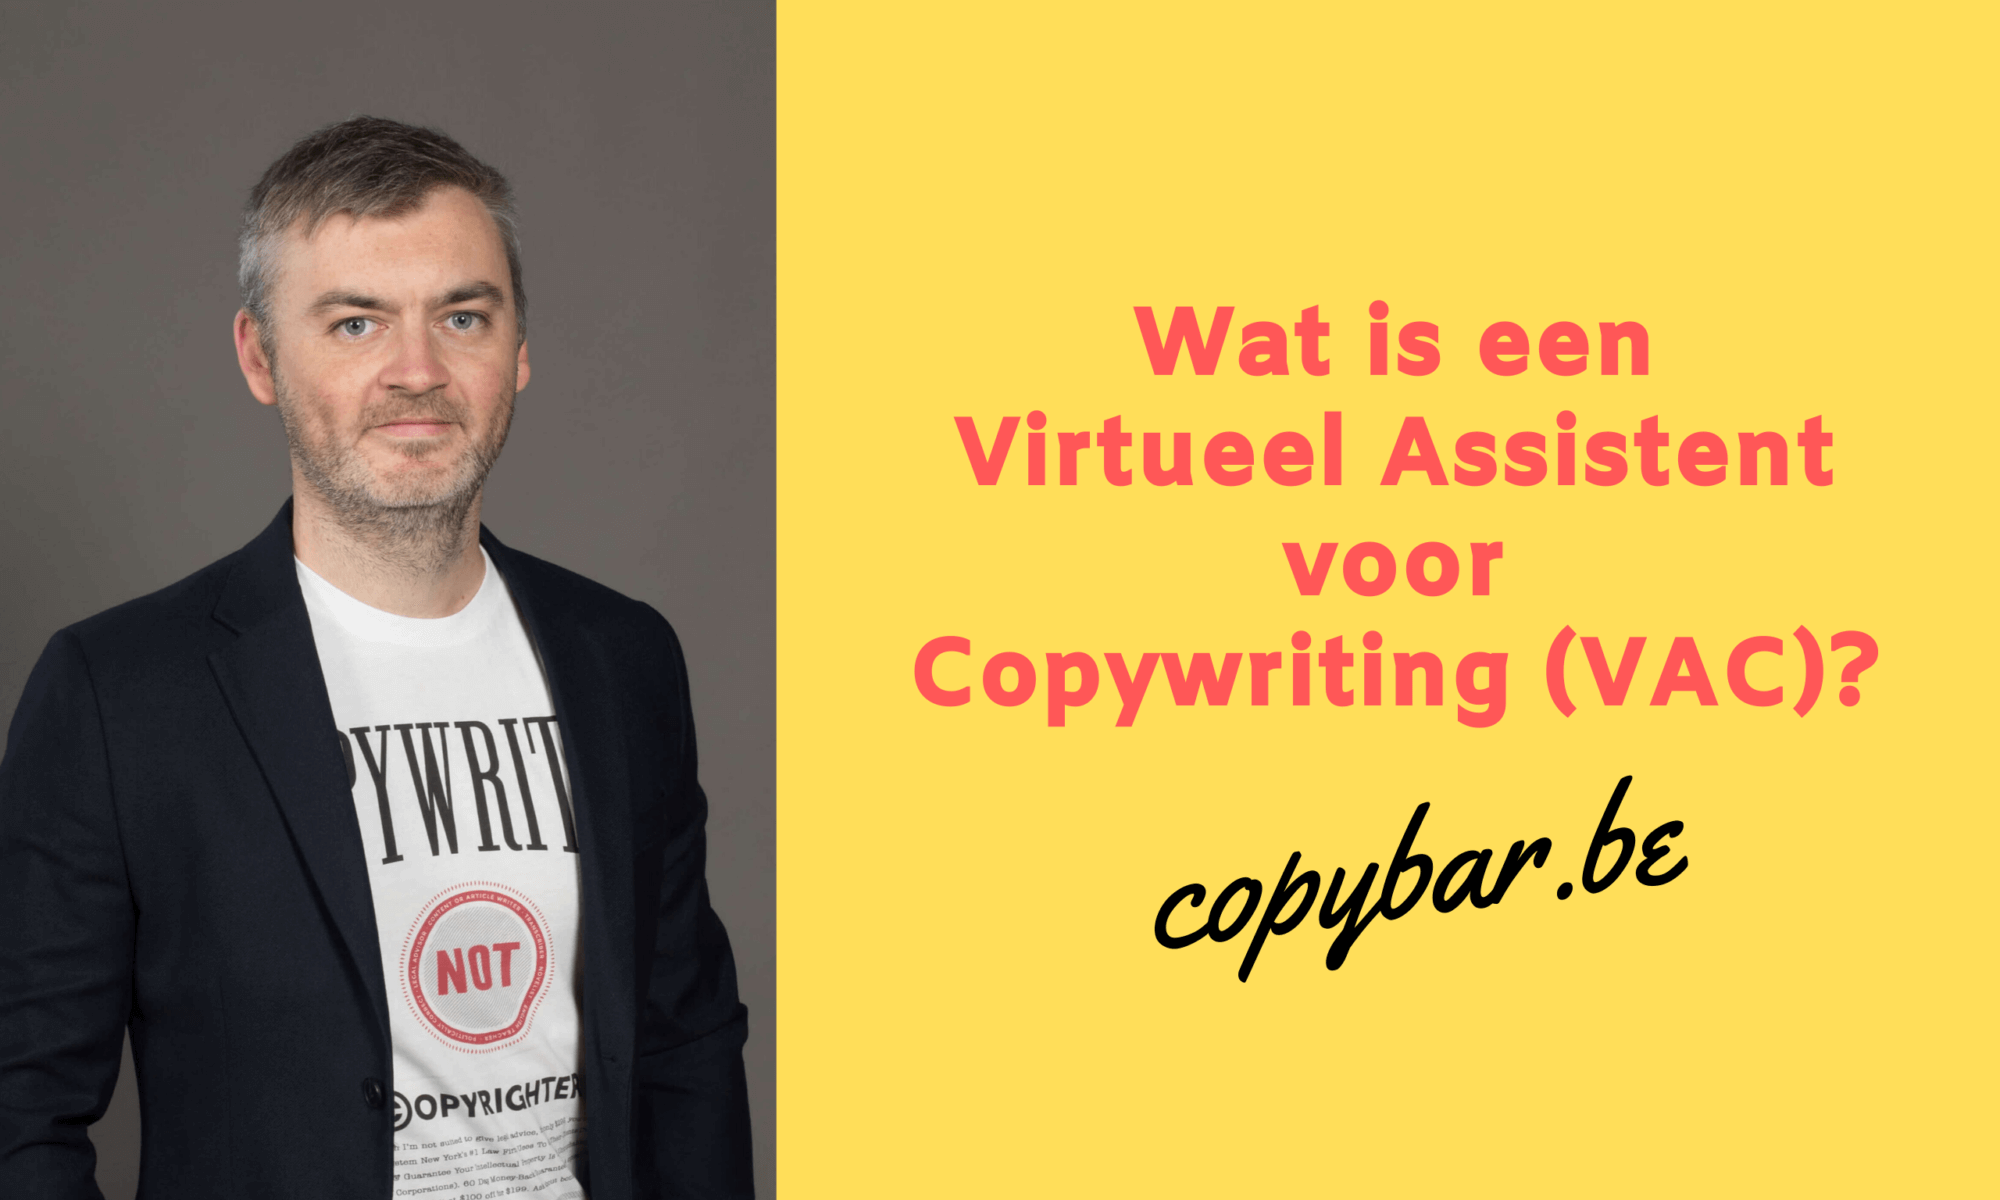 virtueel-assistent-copywriting